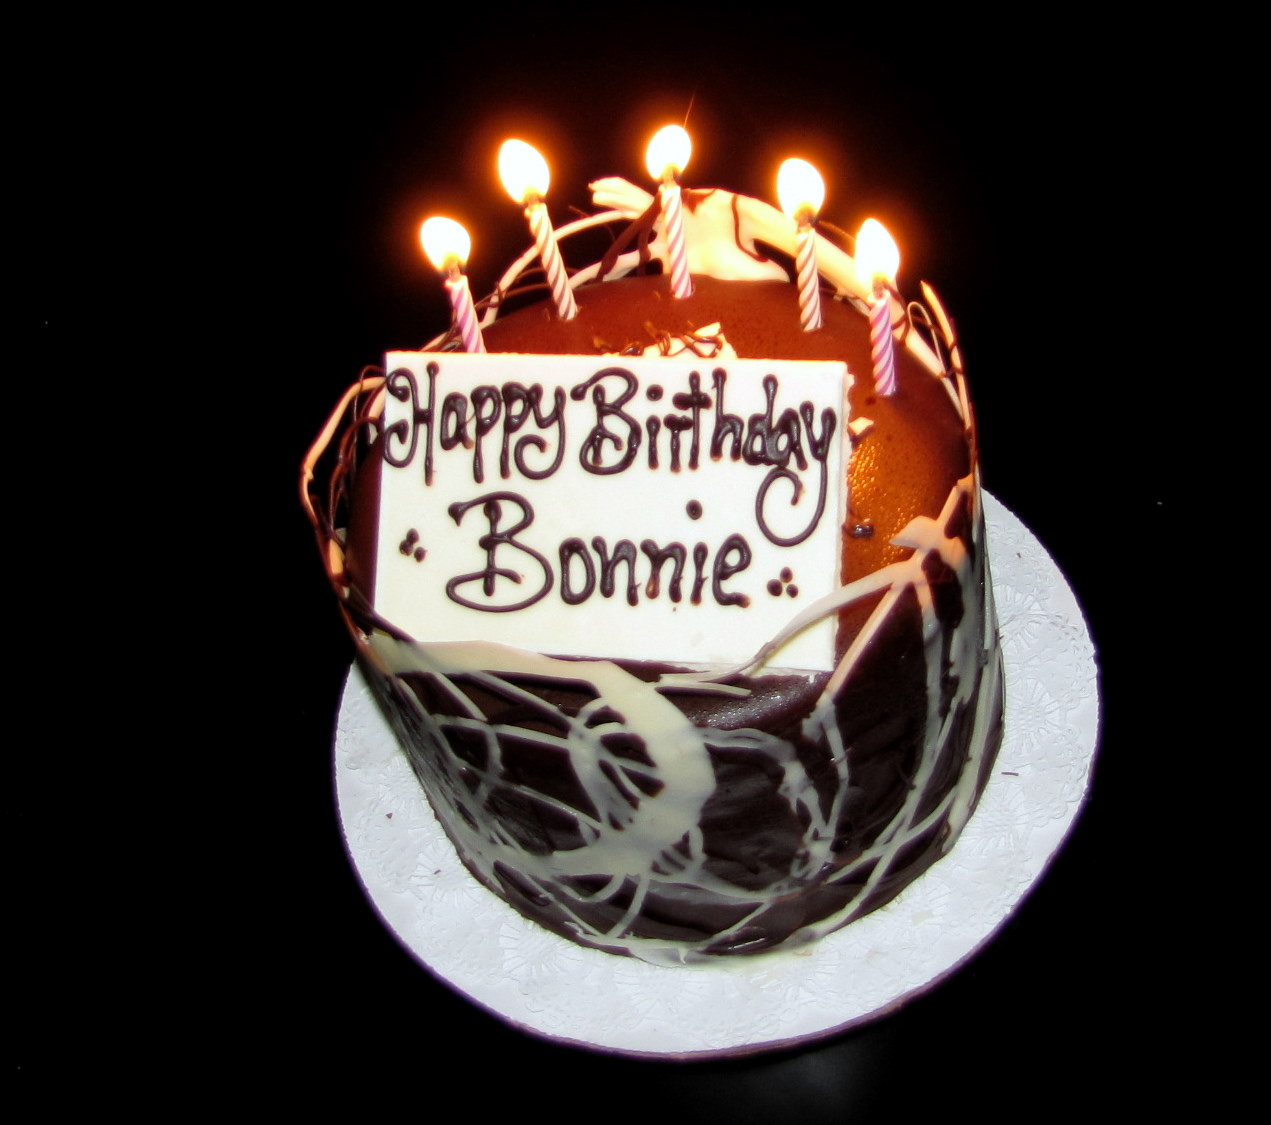 happy birthday bonnie ; bonnie+cake+56